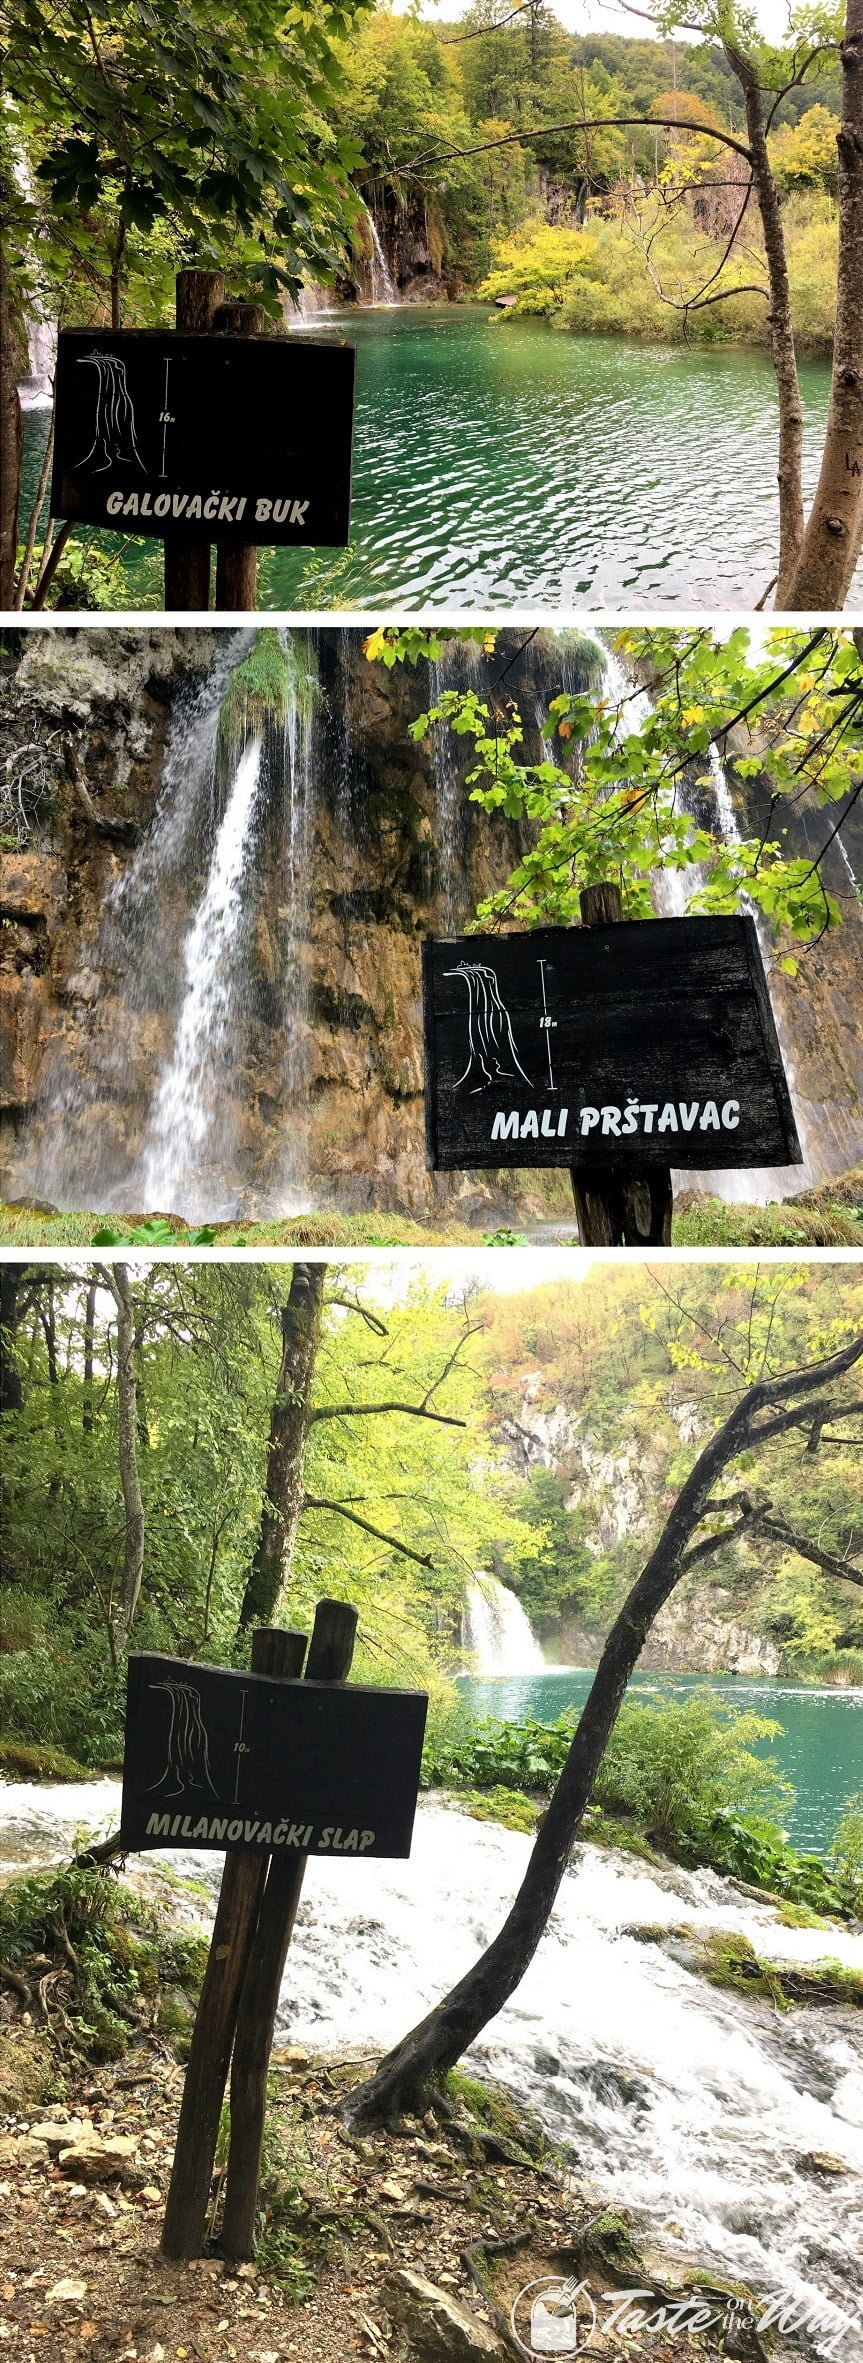 One of the top #tips visiting #Plitvice Lakes National Park in #Croatia is to get closer to the waterfalls. Check out for more! #travel #photography @tasteontheway